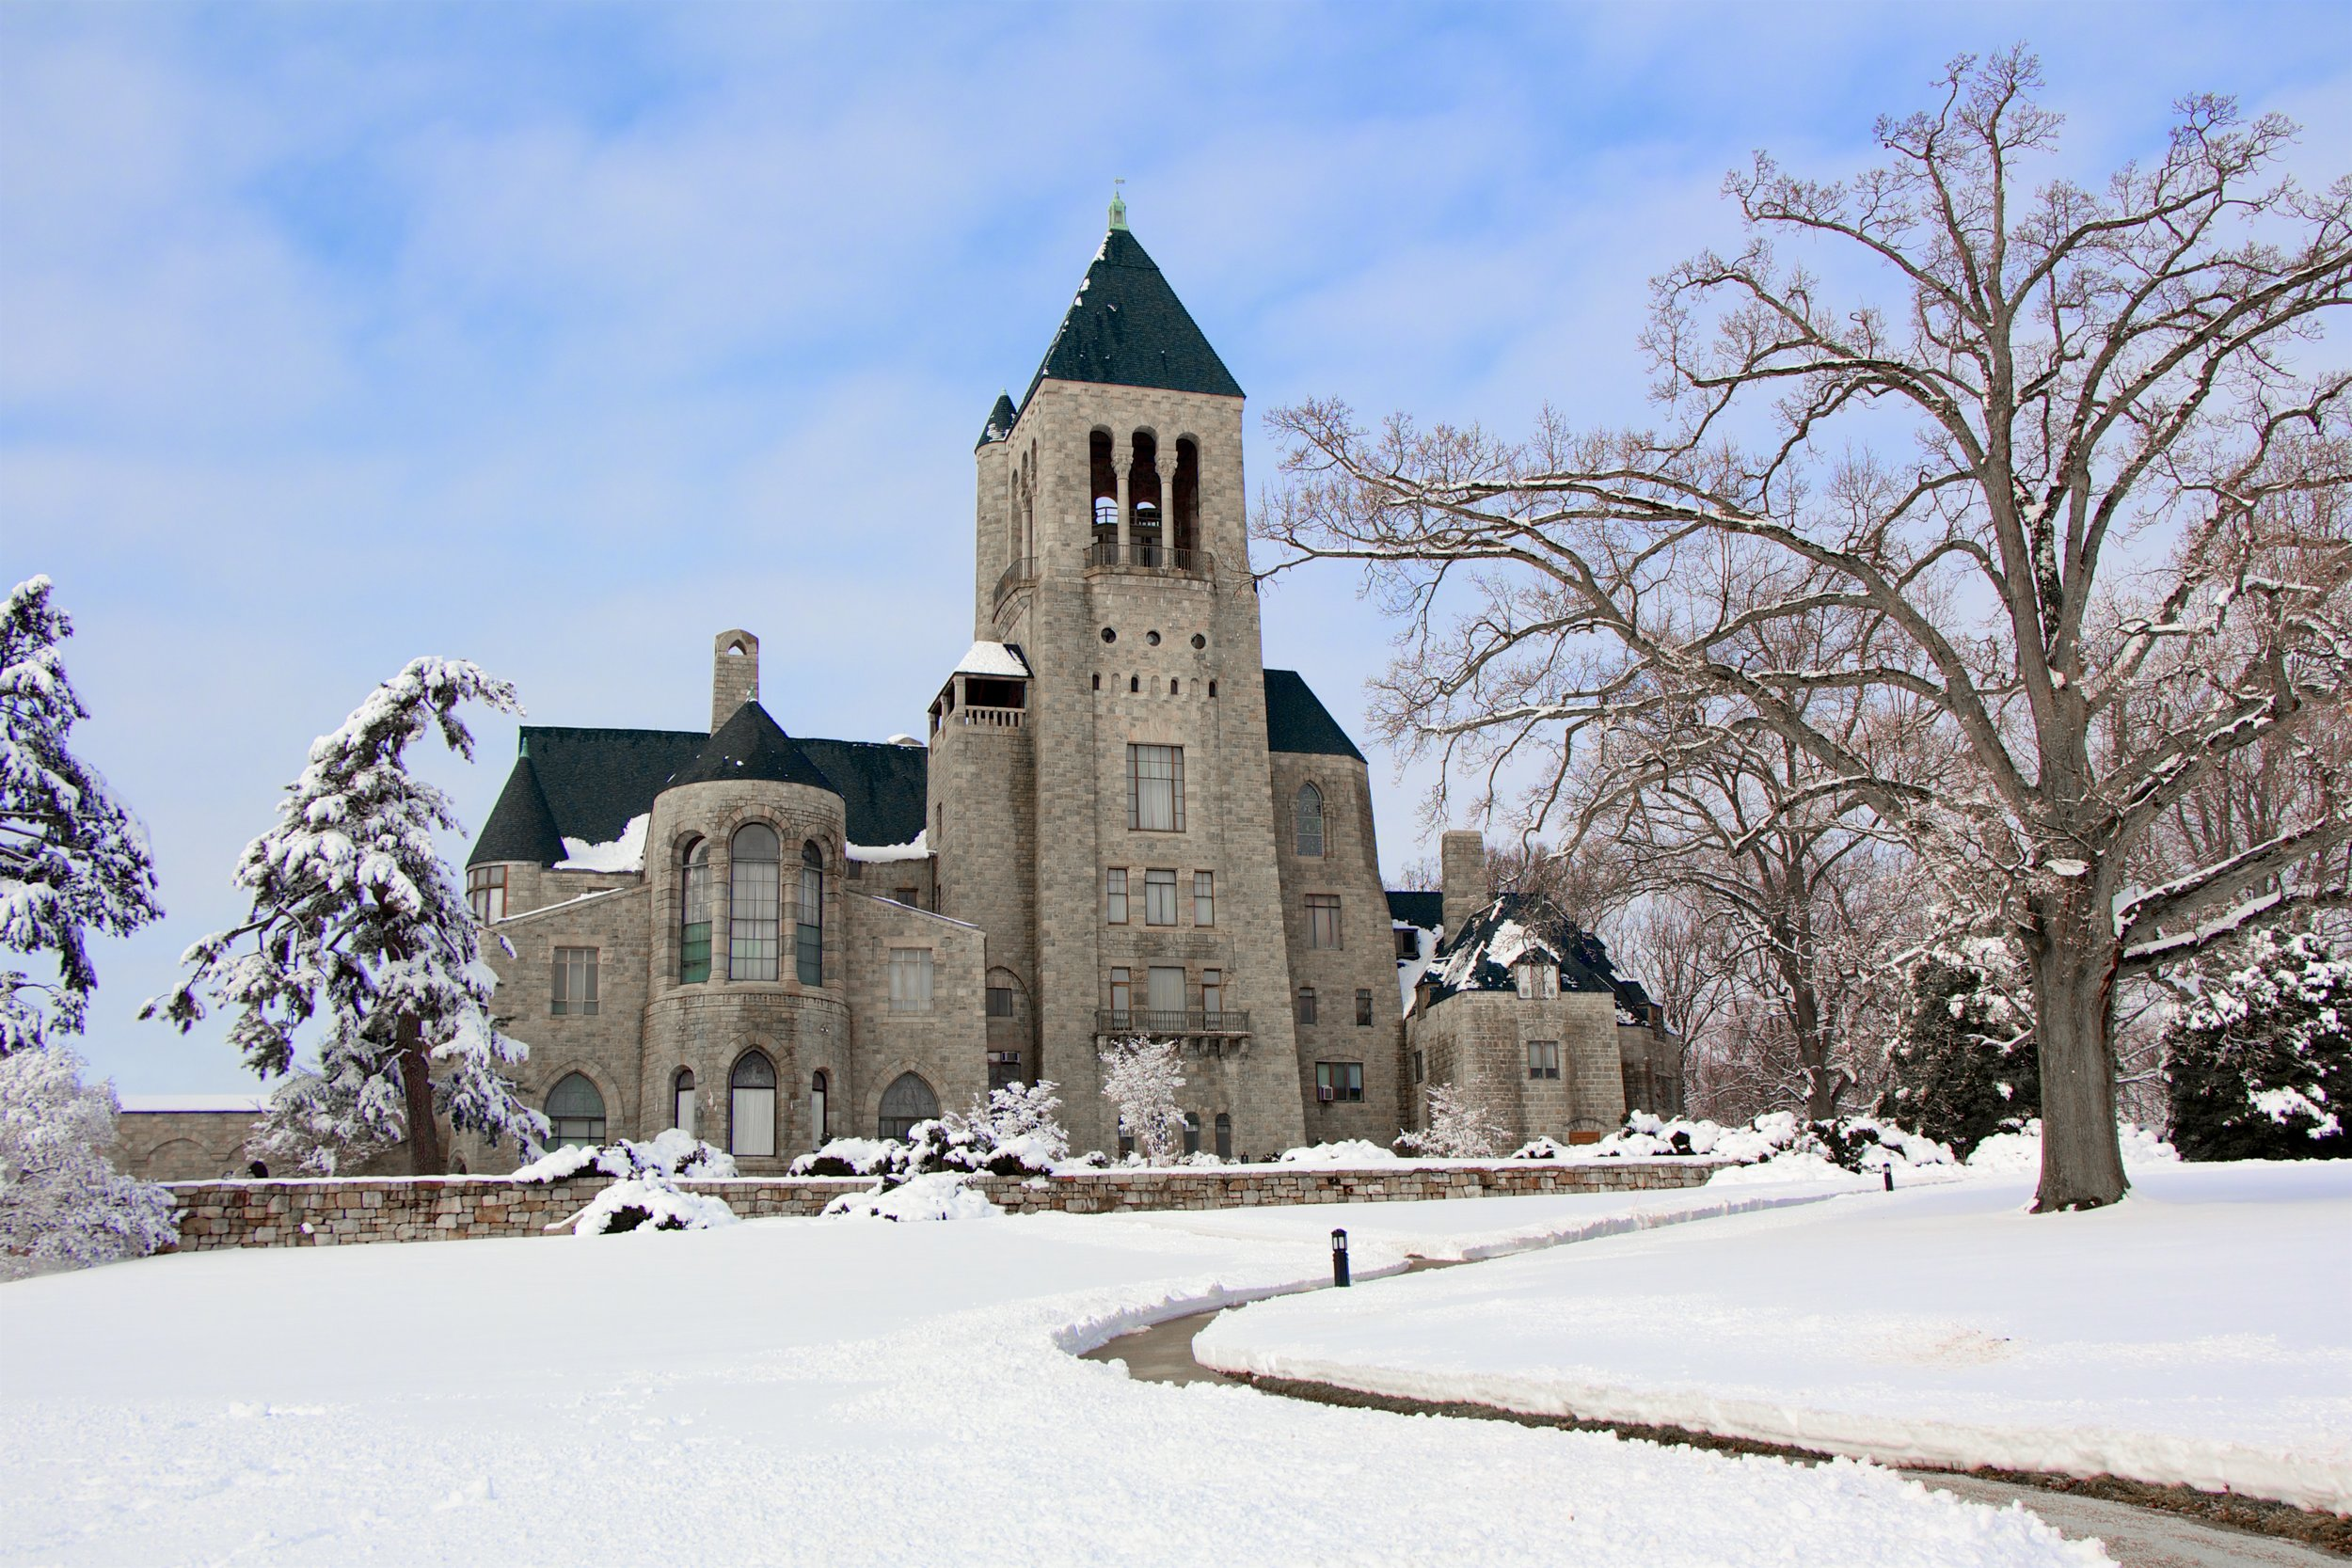 Glencairn Museum in the snow, taken in early 2017